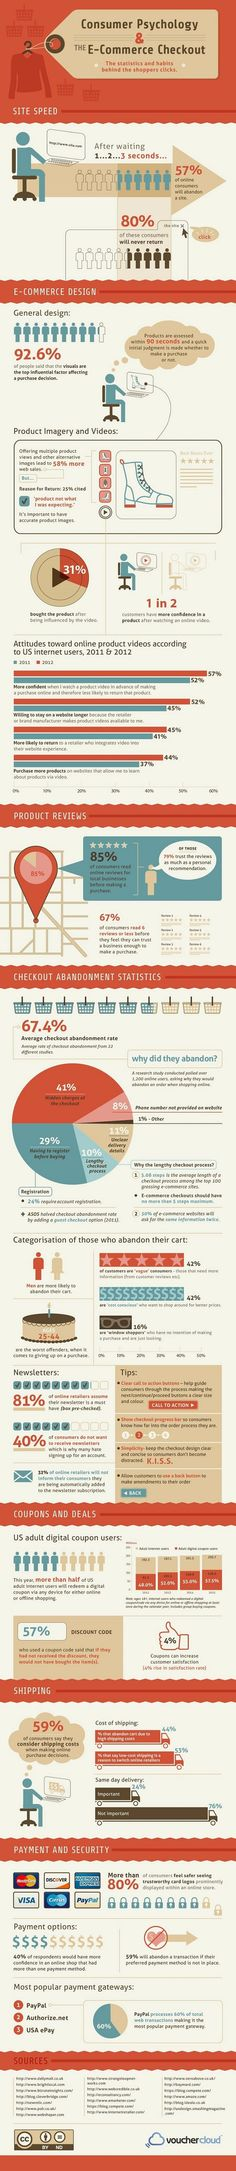 Customer Behavior - Consumer Psychology and the E-Commerce Checkout [Infographic] : MarketingProfs Article